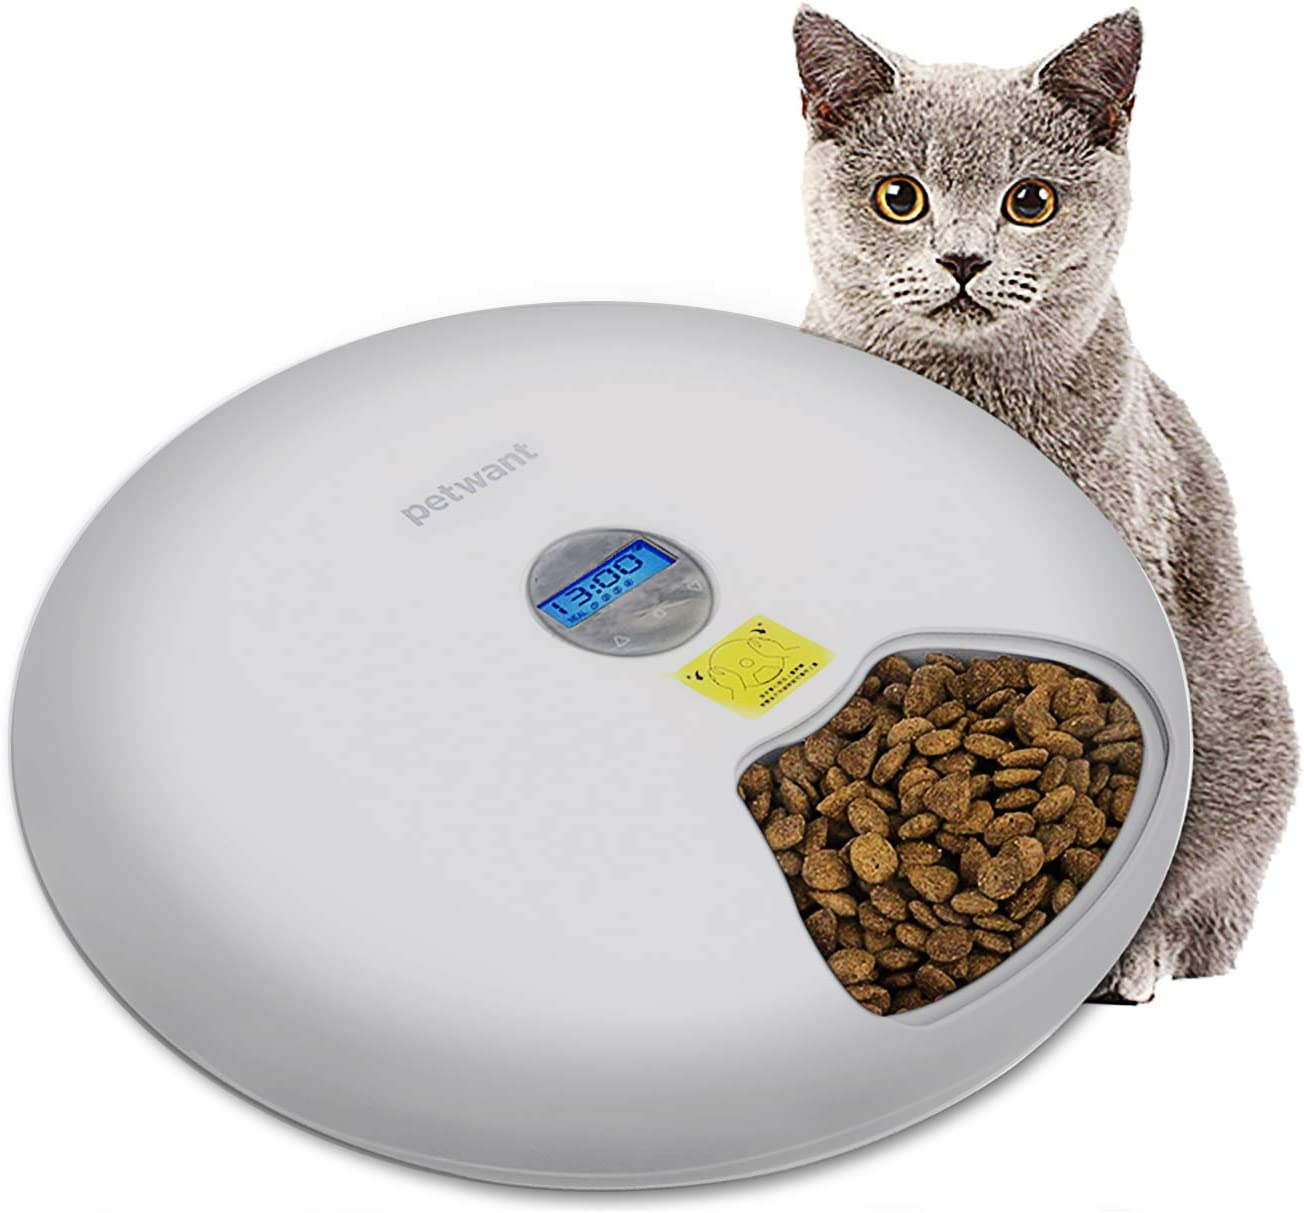 Automatic pet Feeder 6-Meal Food Dispenser with Programmable Digital Timer for Dogs, Cats & Small Animals, Power by USB or Battery, Portion Control, LCD Display ,Feeds Wet or Dry Food